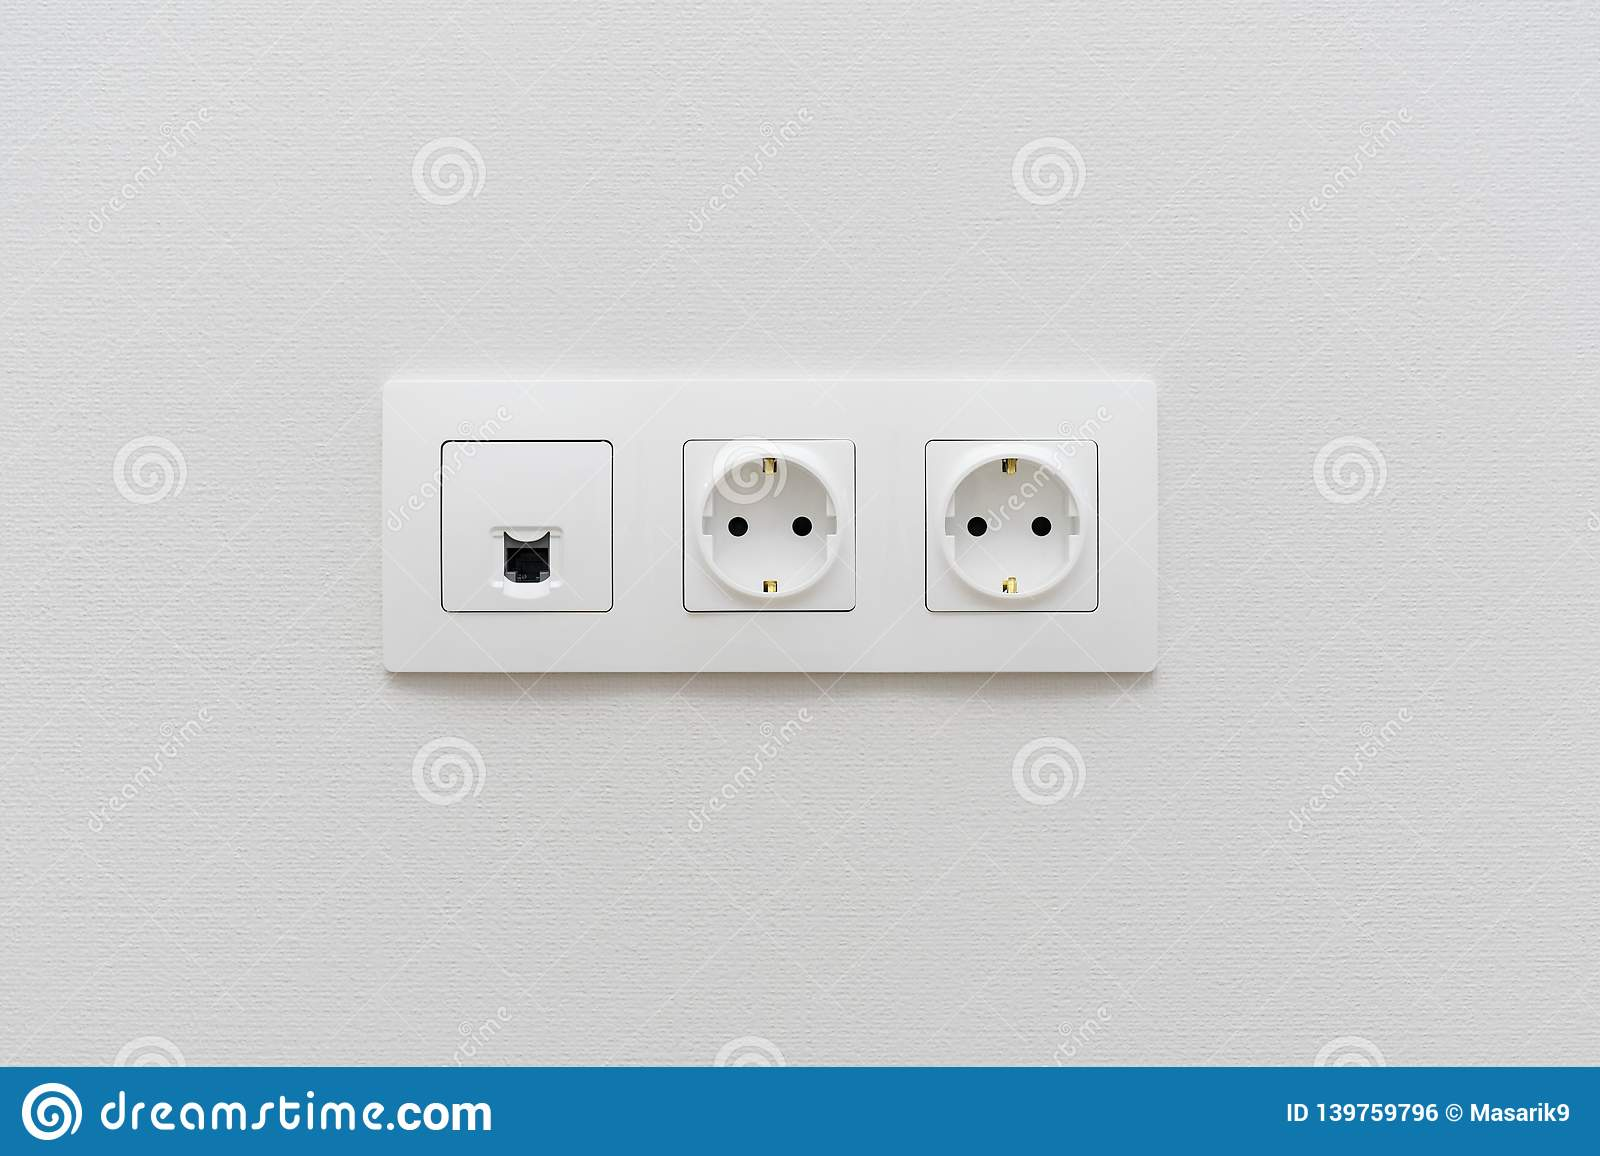 A Socket On A Light Wall, A Multifunction Outlet With An ...